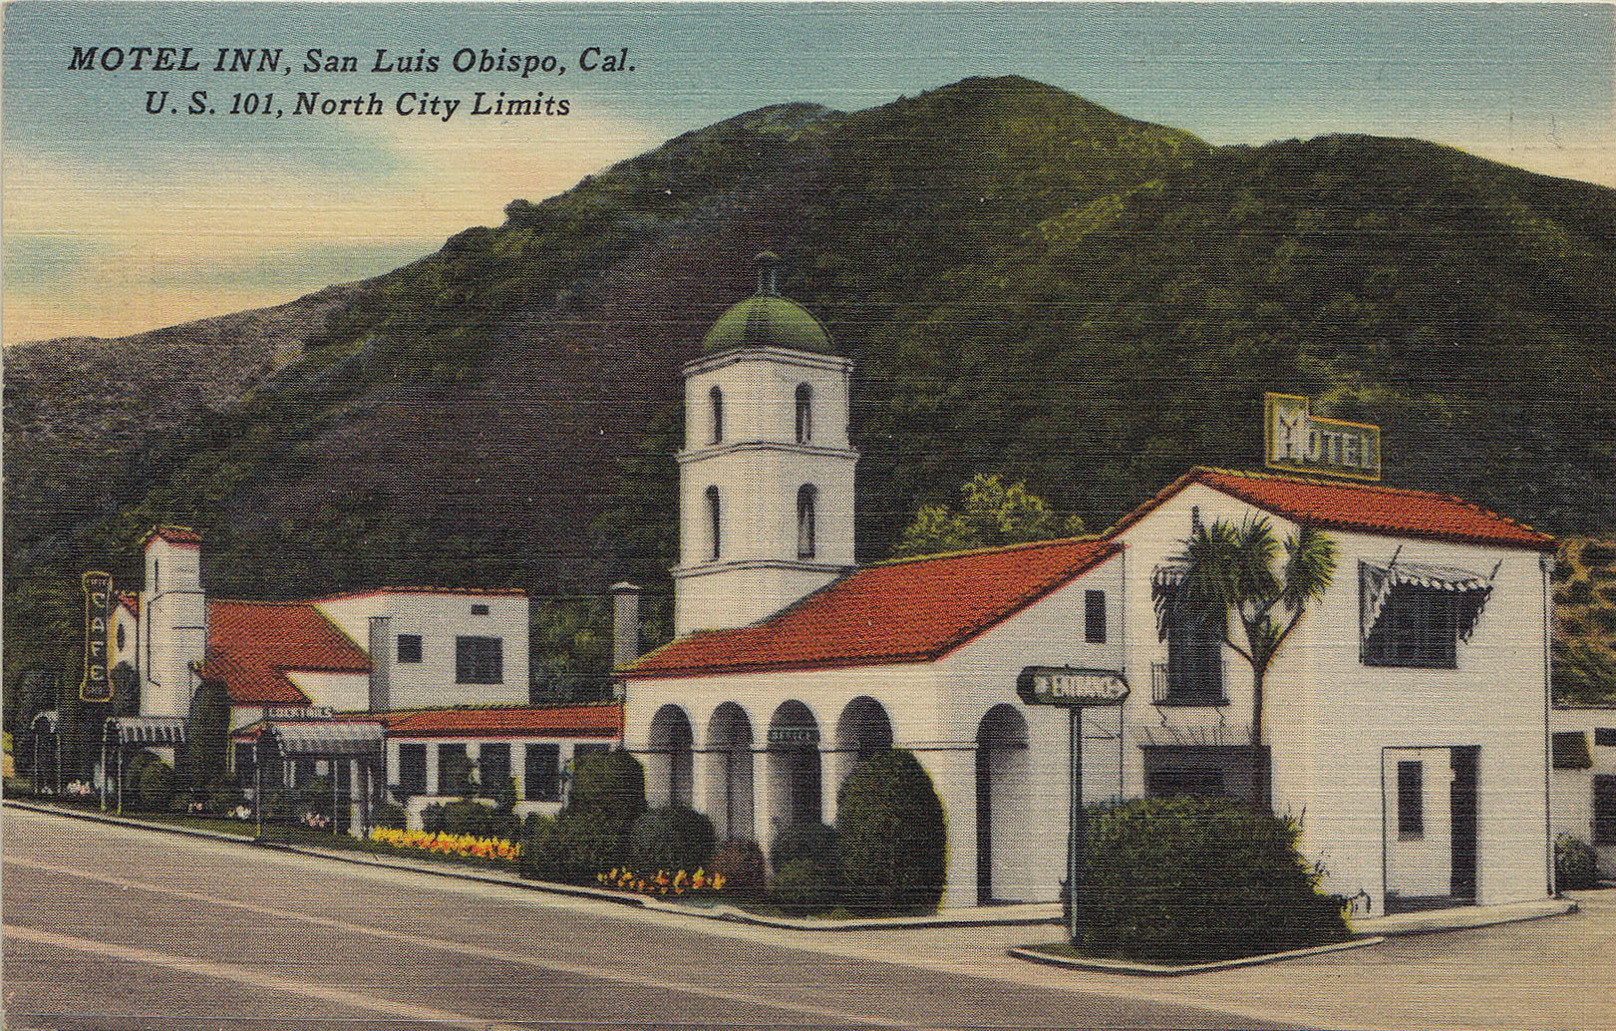 San Luis Obispo's Motel Inn, which opened in 1925, is considered the world's first motel.